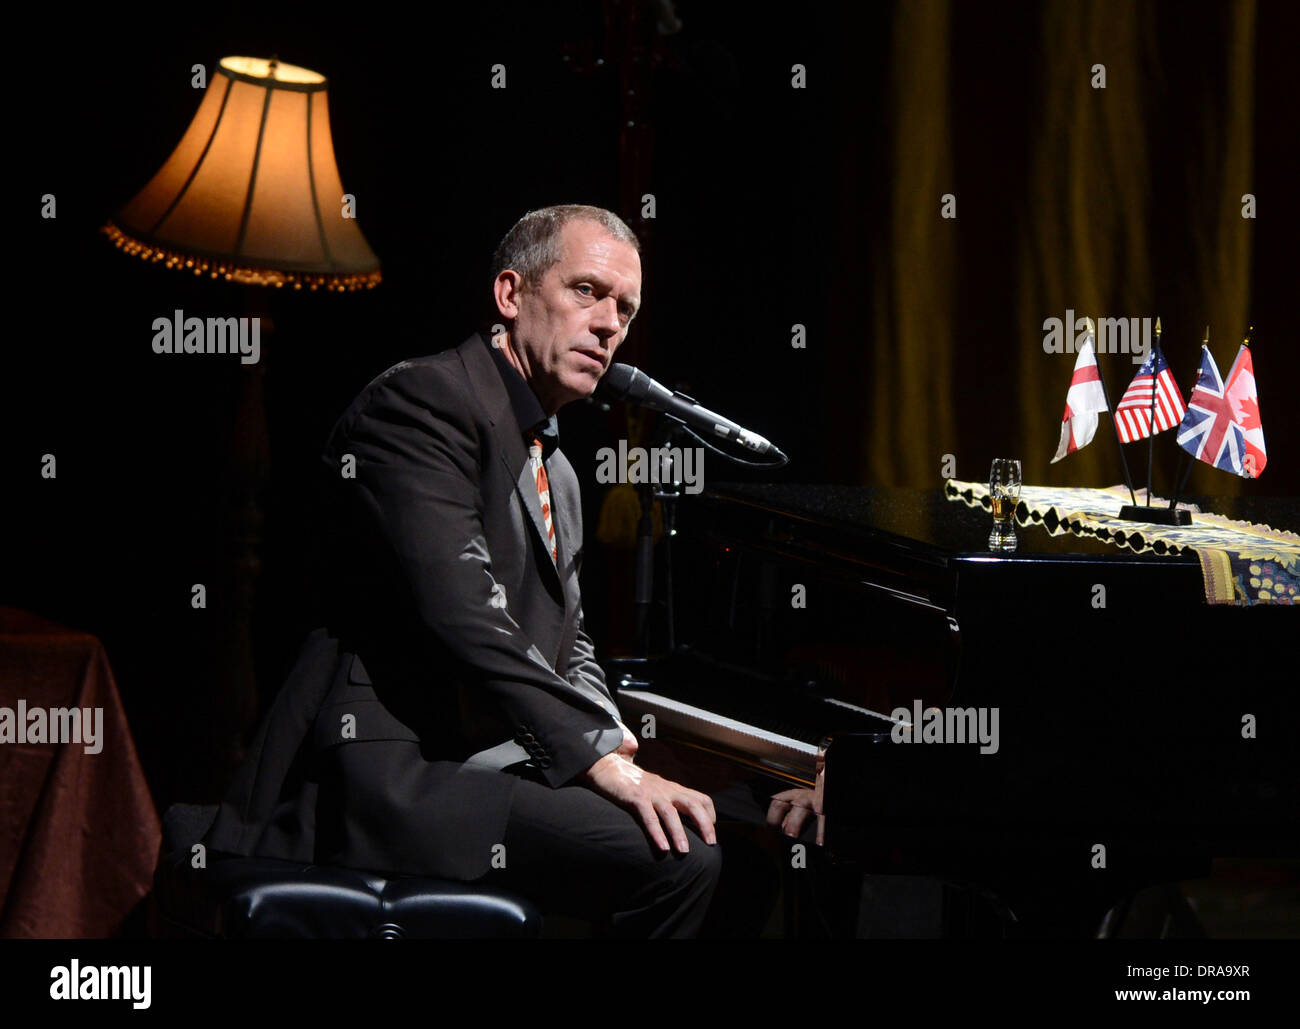 Hugh Laurie  performing on stage at Hammersmith Apollo London, England - 02.07.12 - Stock Image